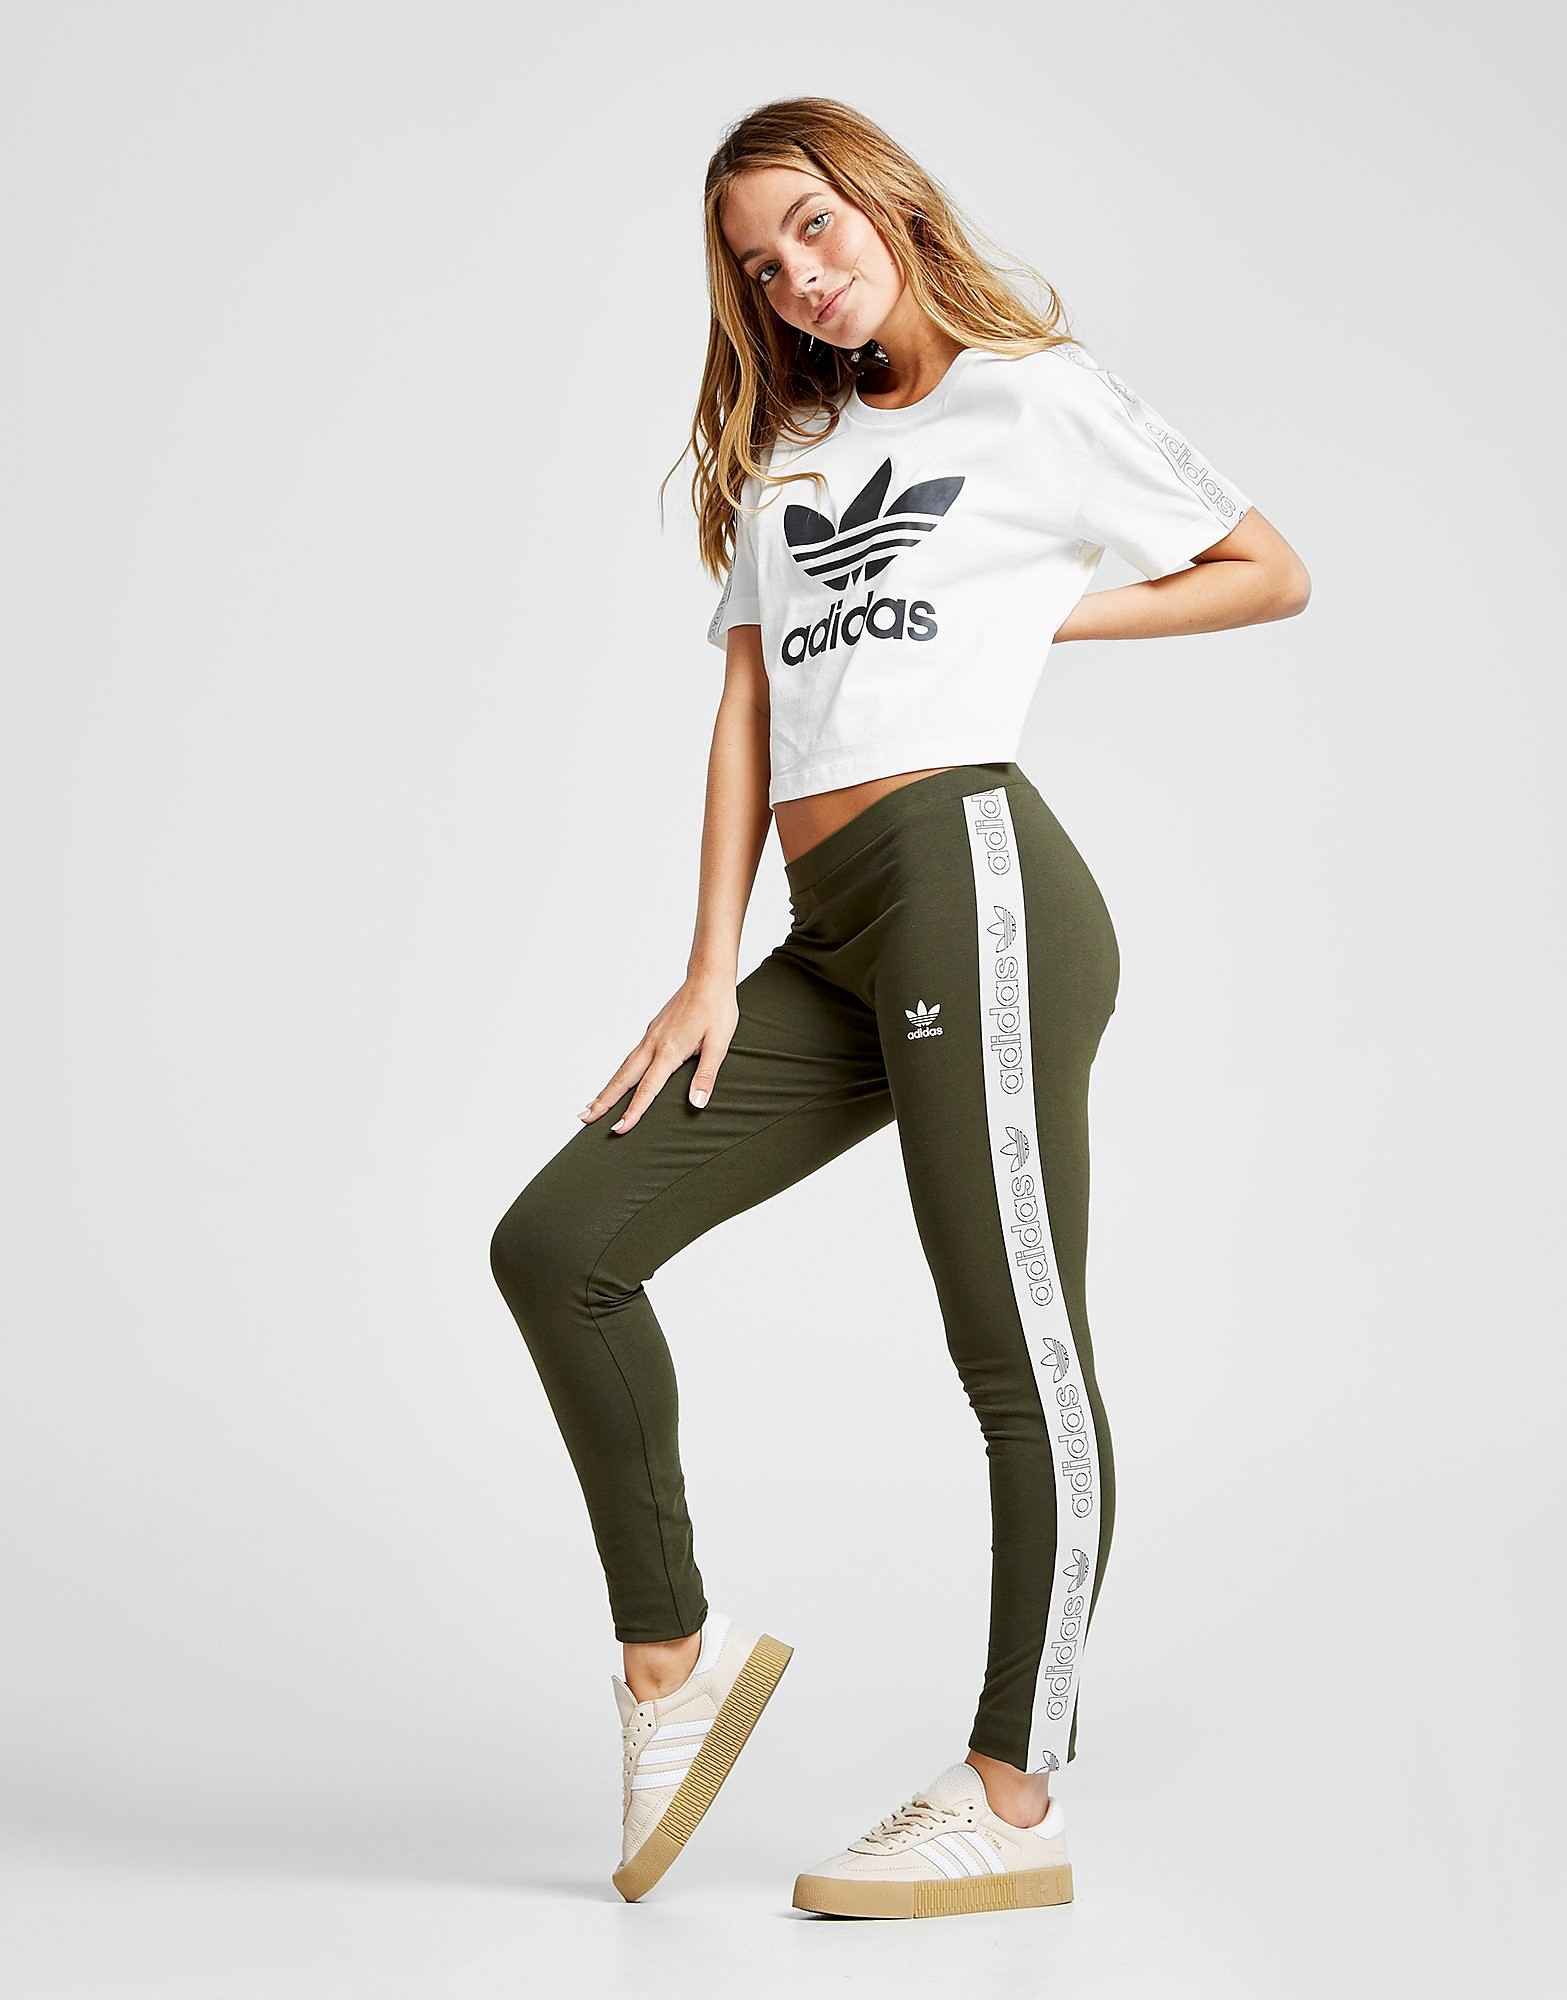 adidas Originals Tape Leggings - Only at JD - Cargo - Womens, Cargo